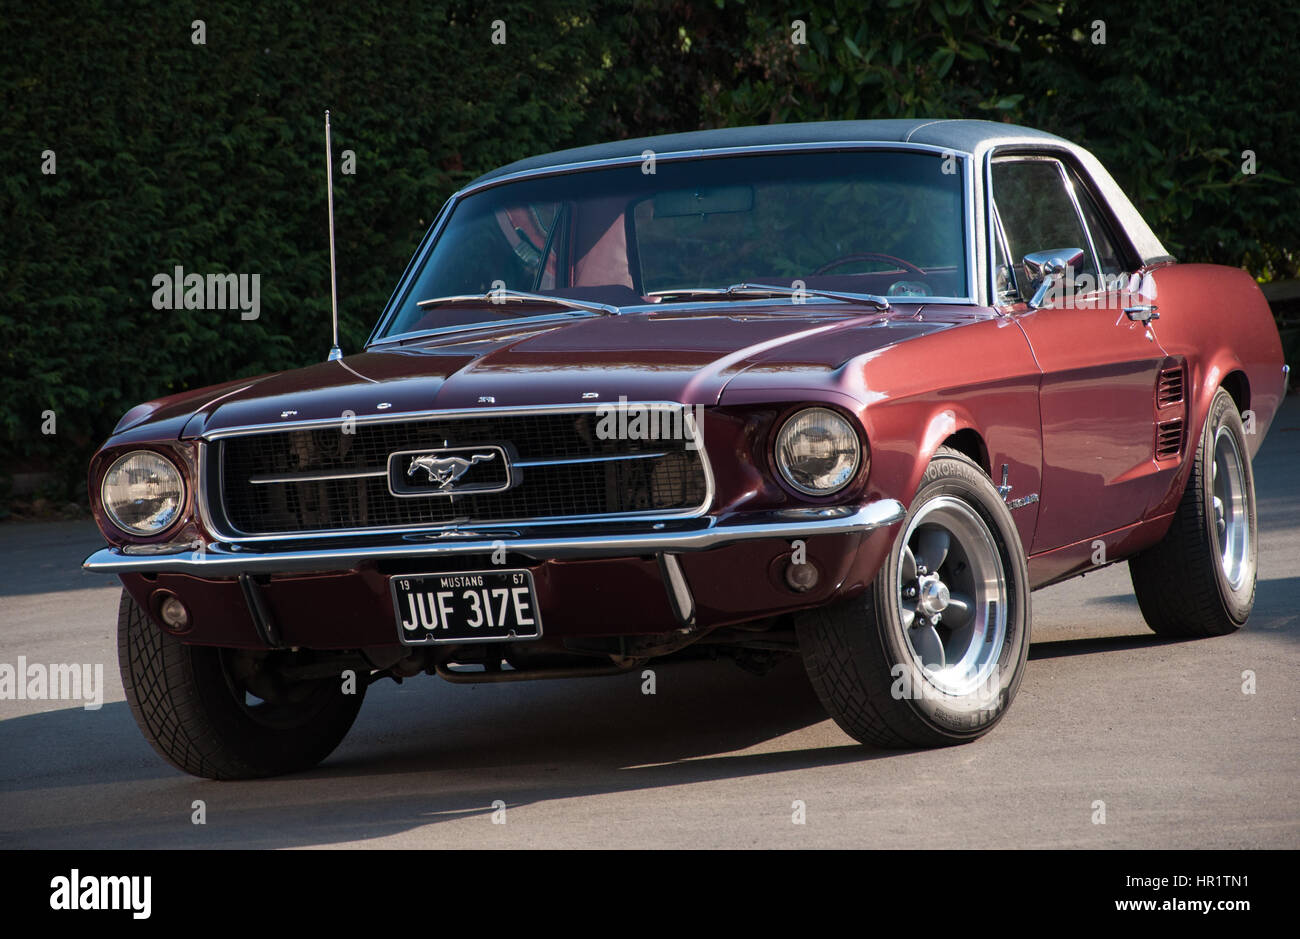 1967 Classic Ford Mustang Coupe In Burgundy With Torque Thrust D Stock Photo Alamy